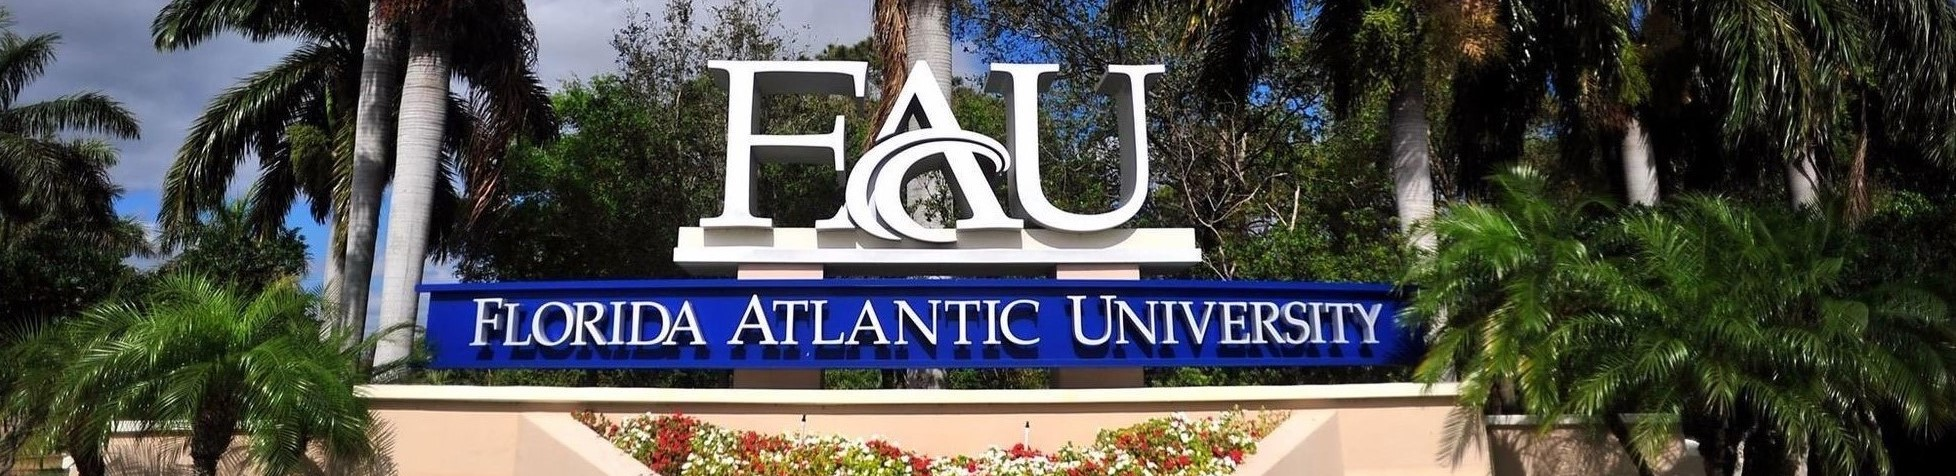 Florida Atlantic University | Student Union Ticketing